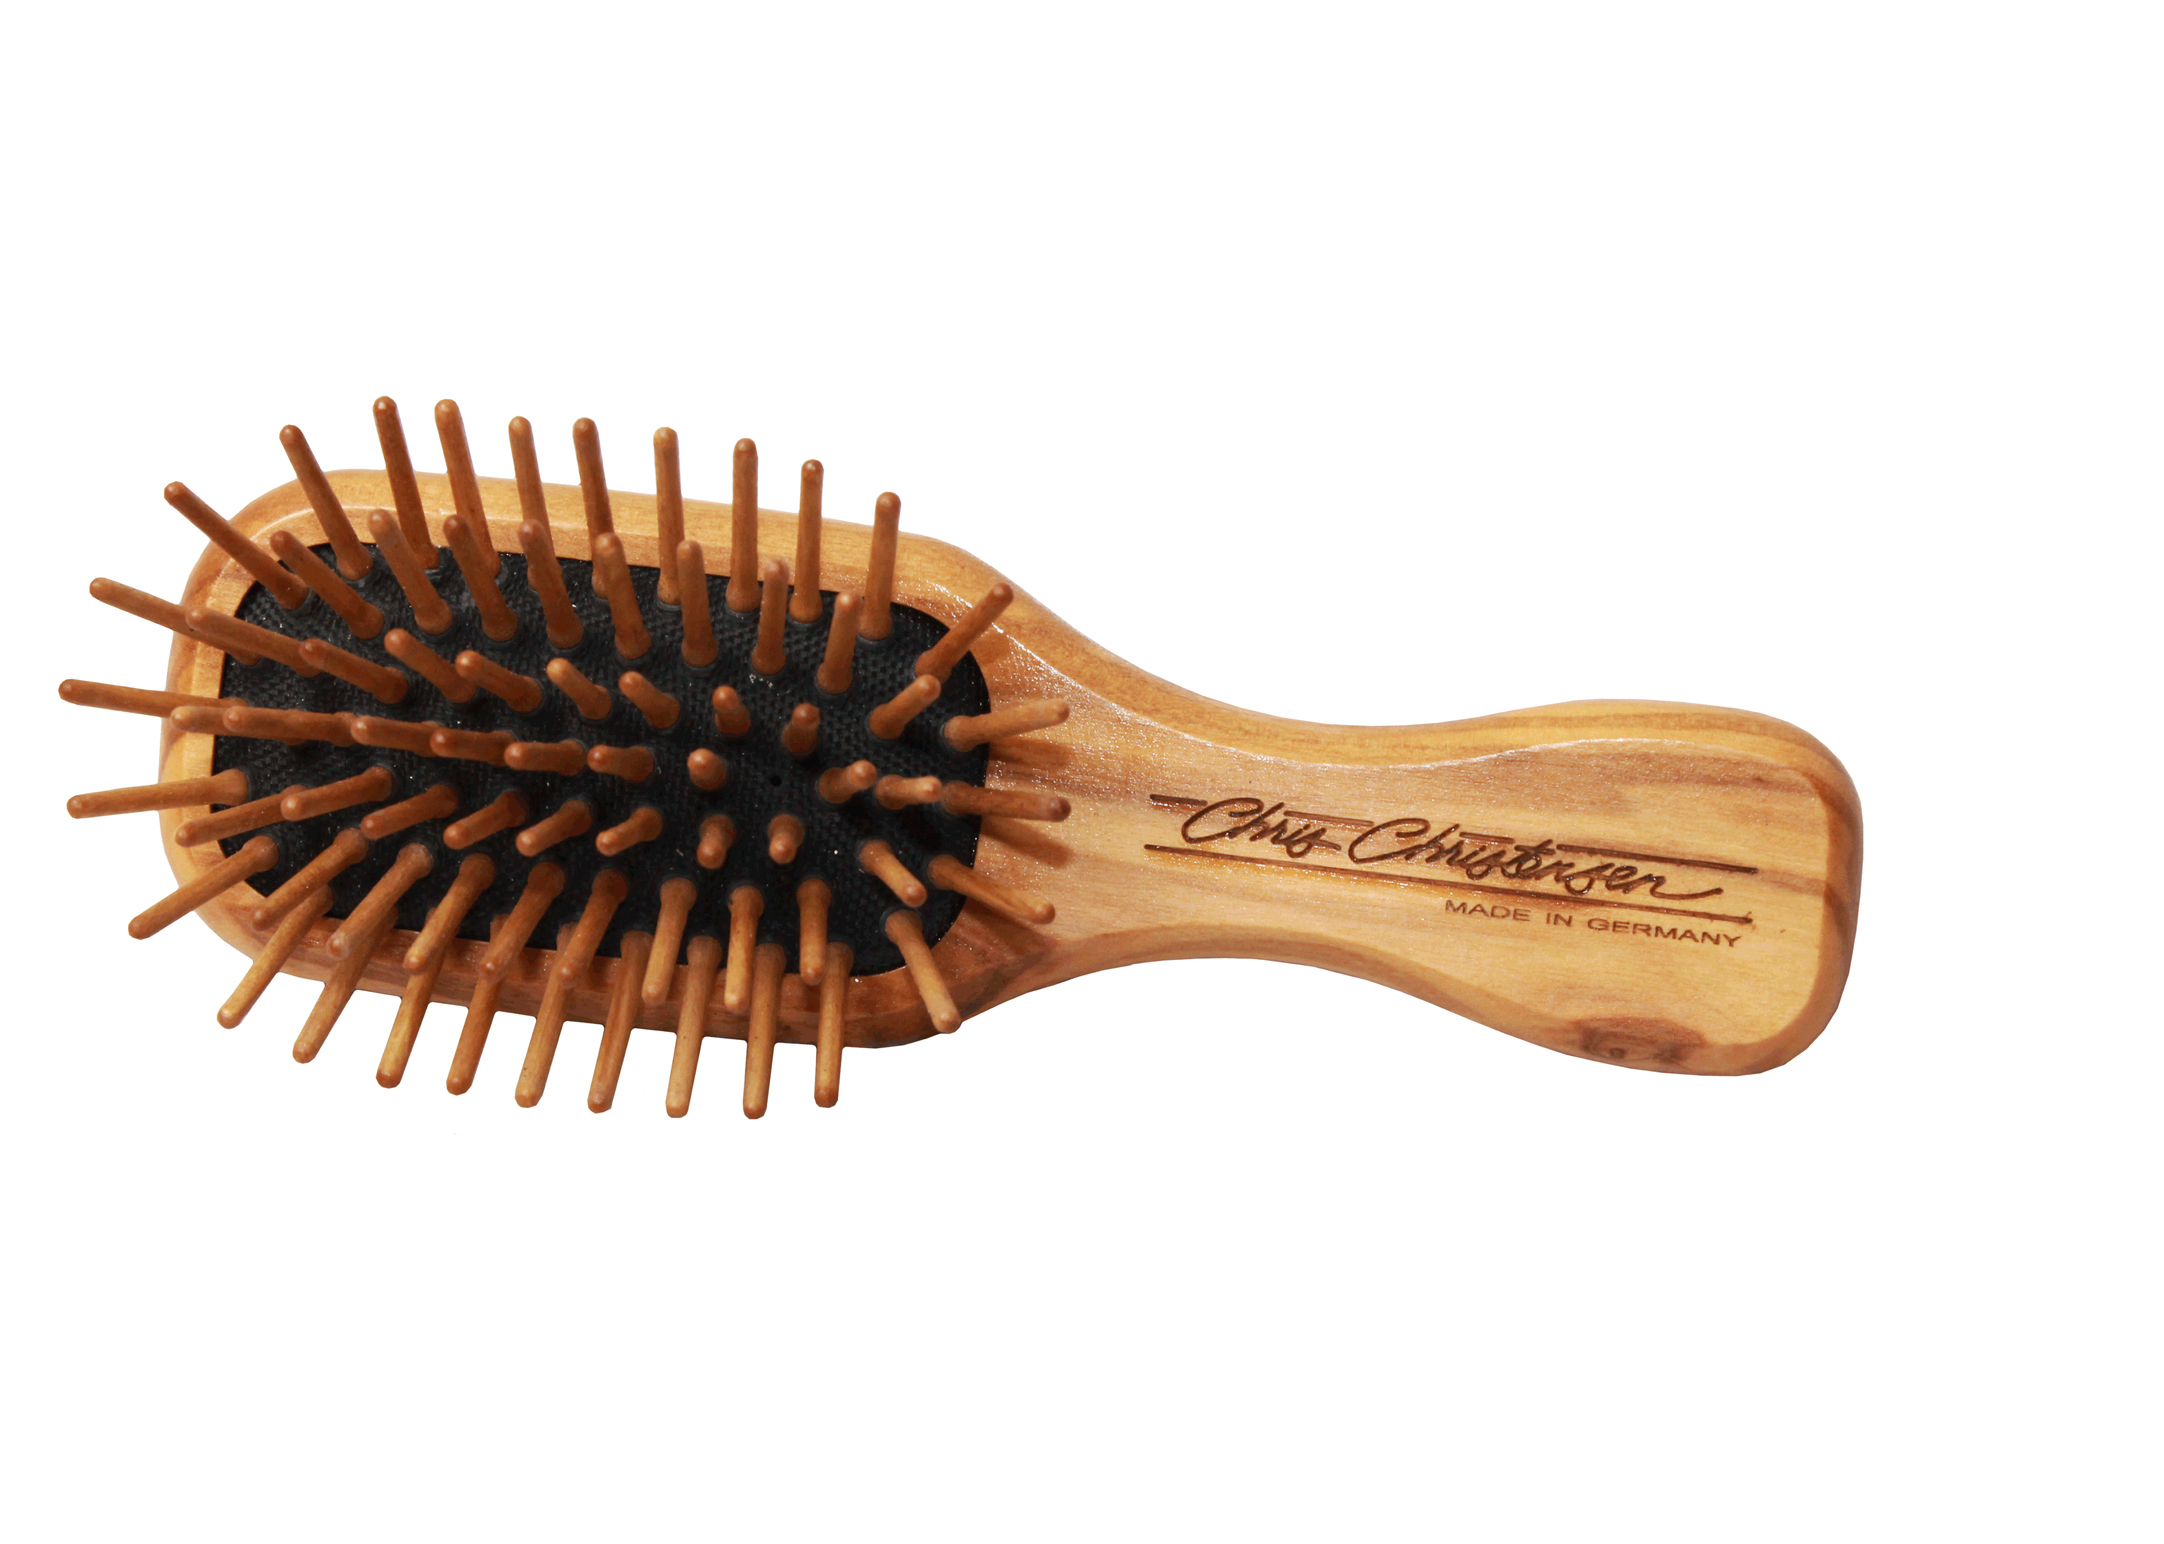 Chris Christensen Systems Tiny Tot Wood Pin Brush 11cm - 15mm Pins